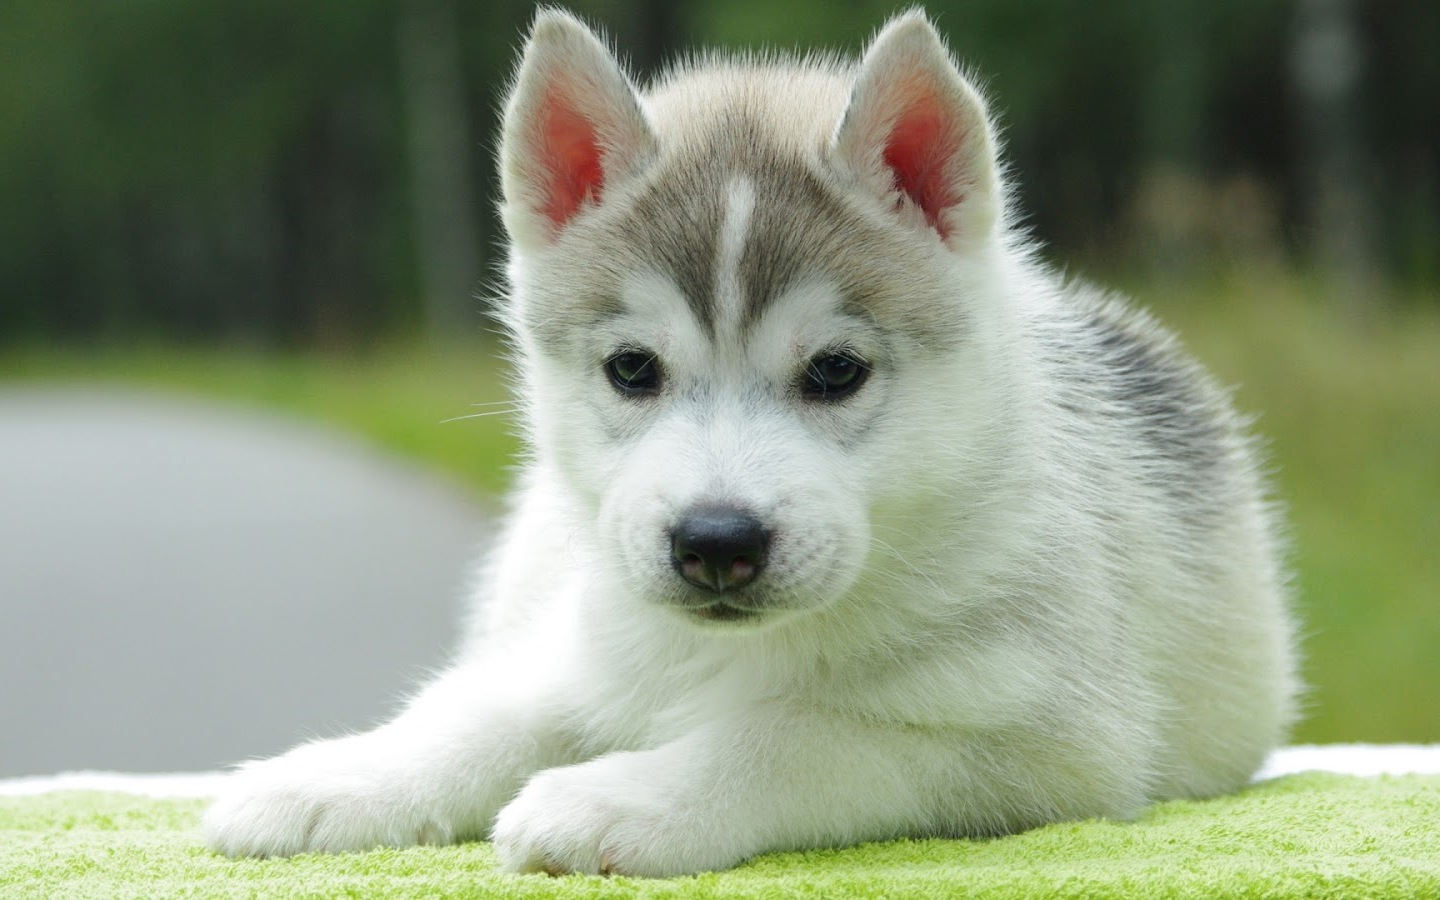 to Cute Puppy Wallpapers for Desktop Mobile Backgrounds Next Image 1440x900